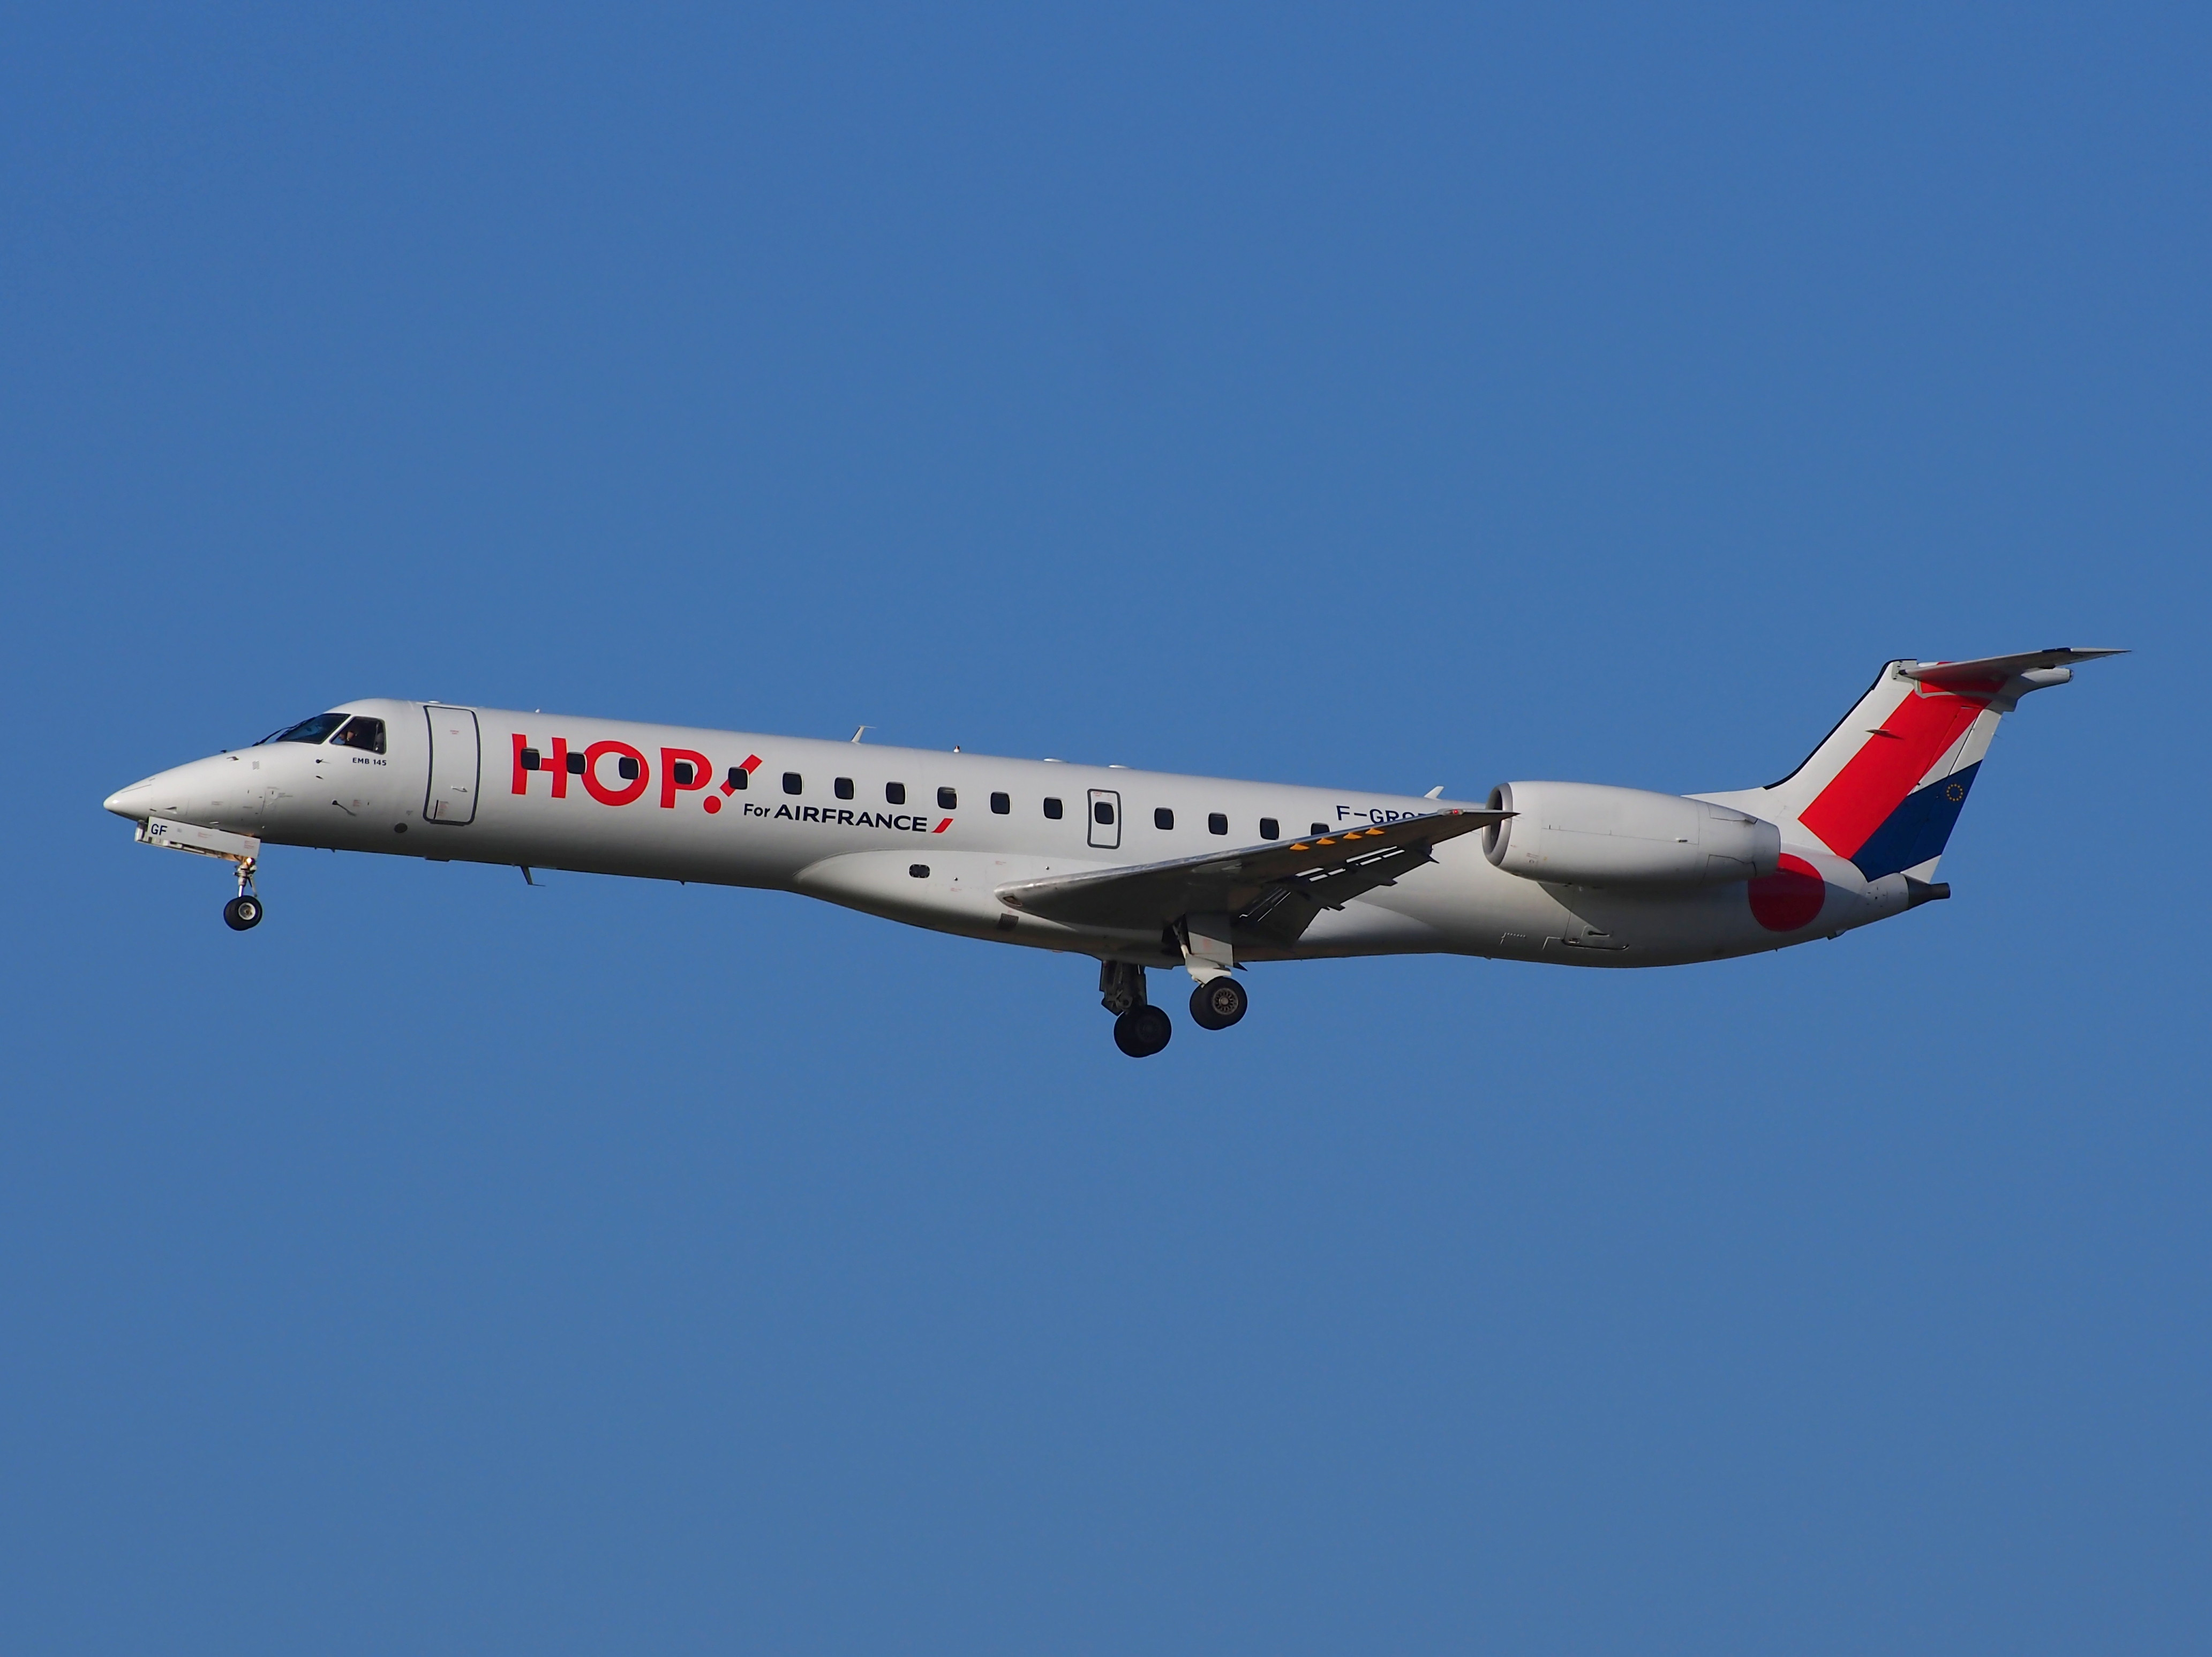 F-GRGF, landing at Schiphol on 2Feb2014 pic27